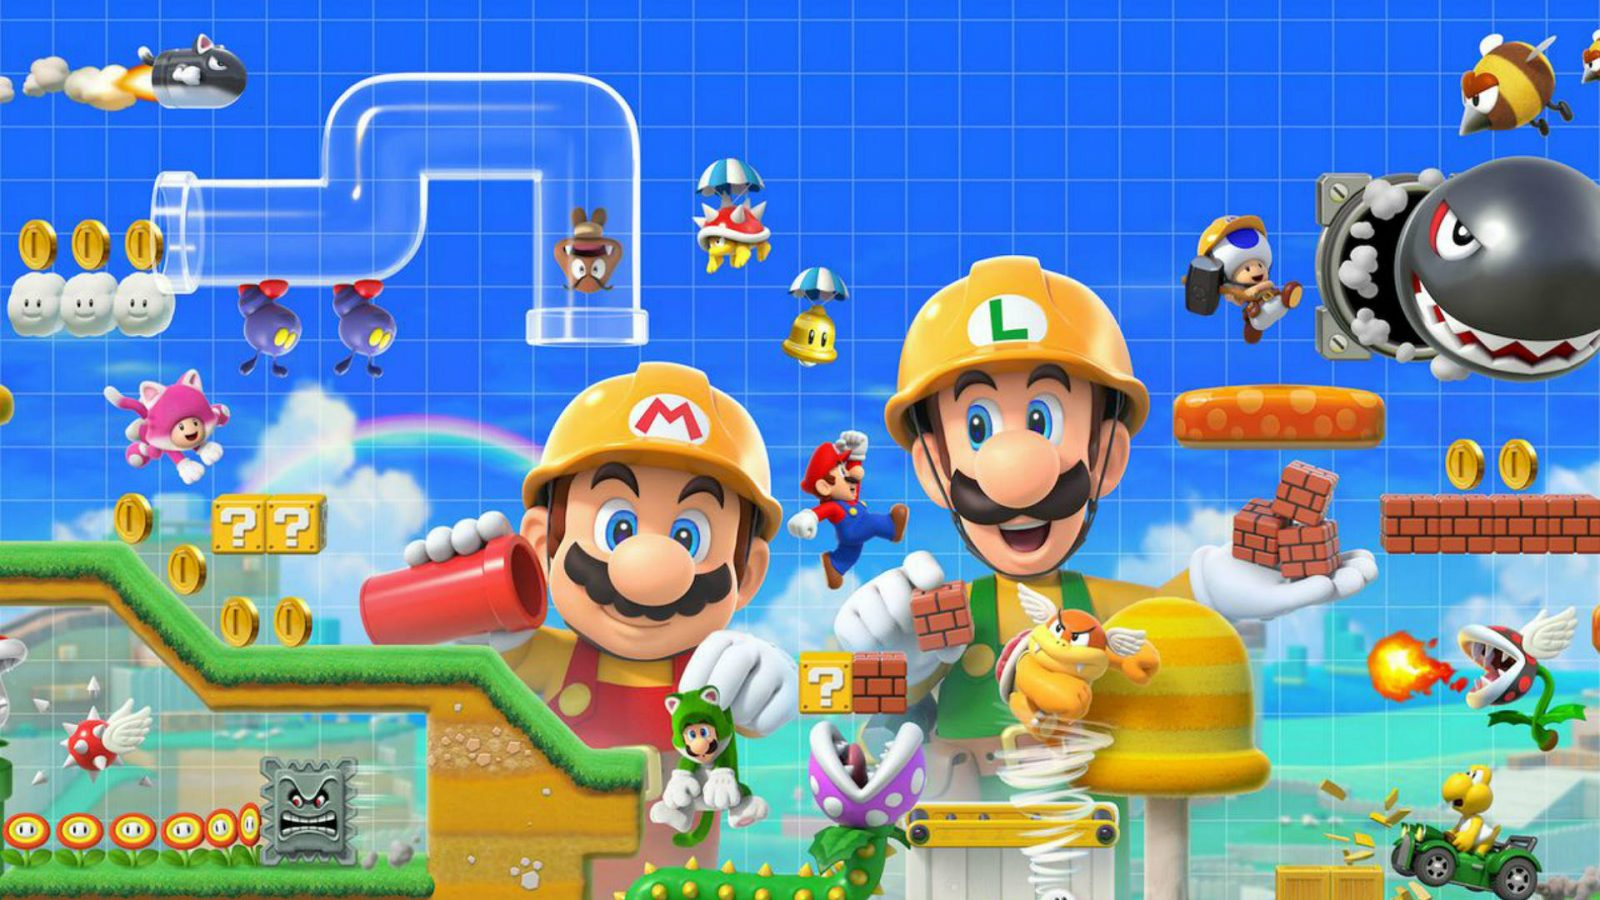 Check Out This Super Mario Maker 2 Course From the Yooka-Laylee Developers